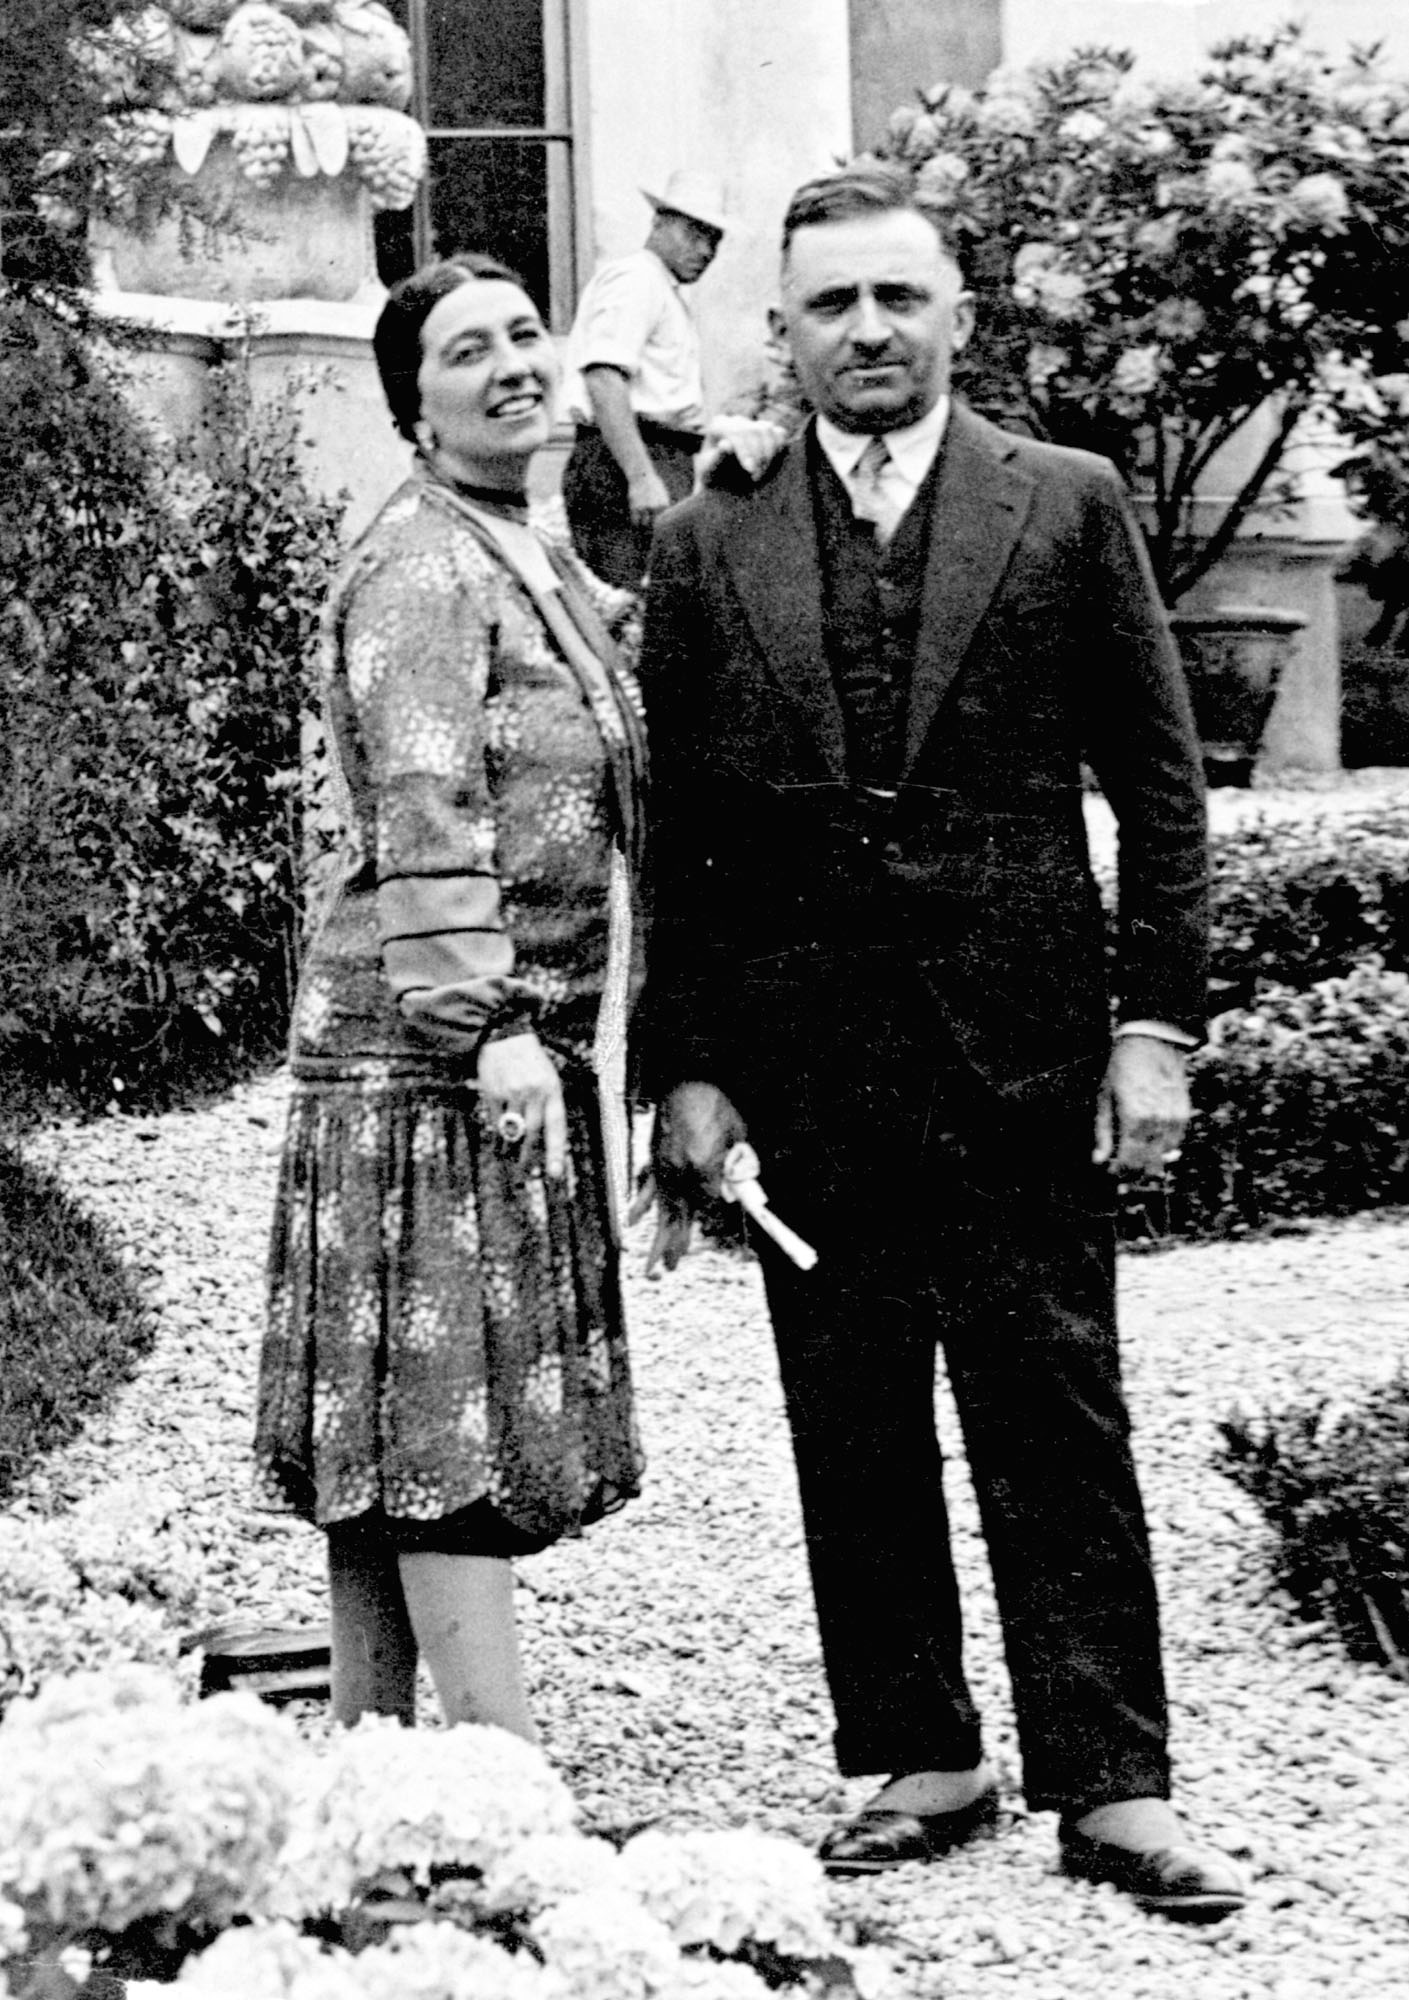 1919 - Riccardo and Virginia Barilla